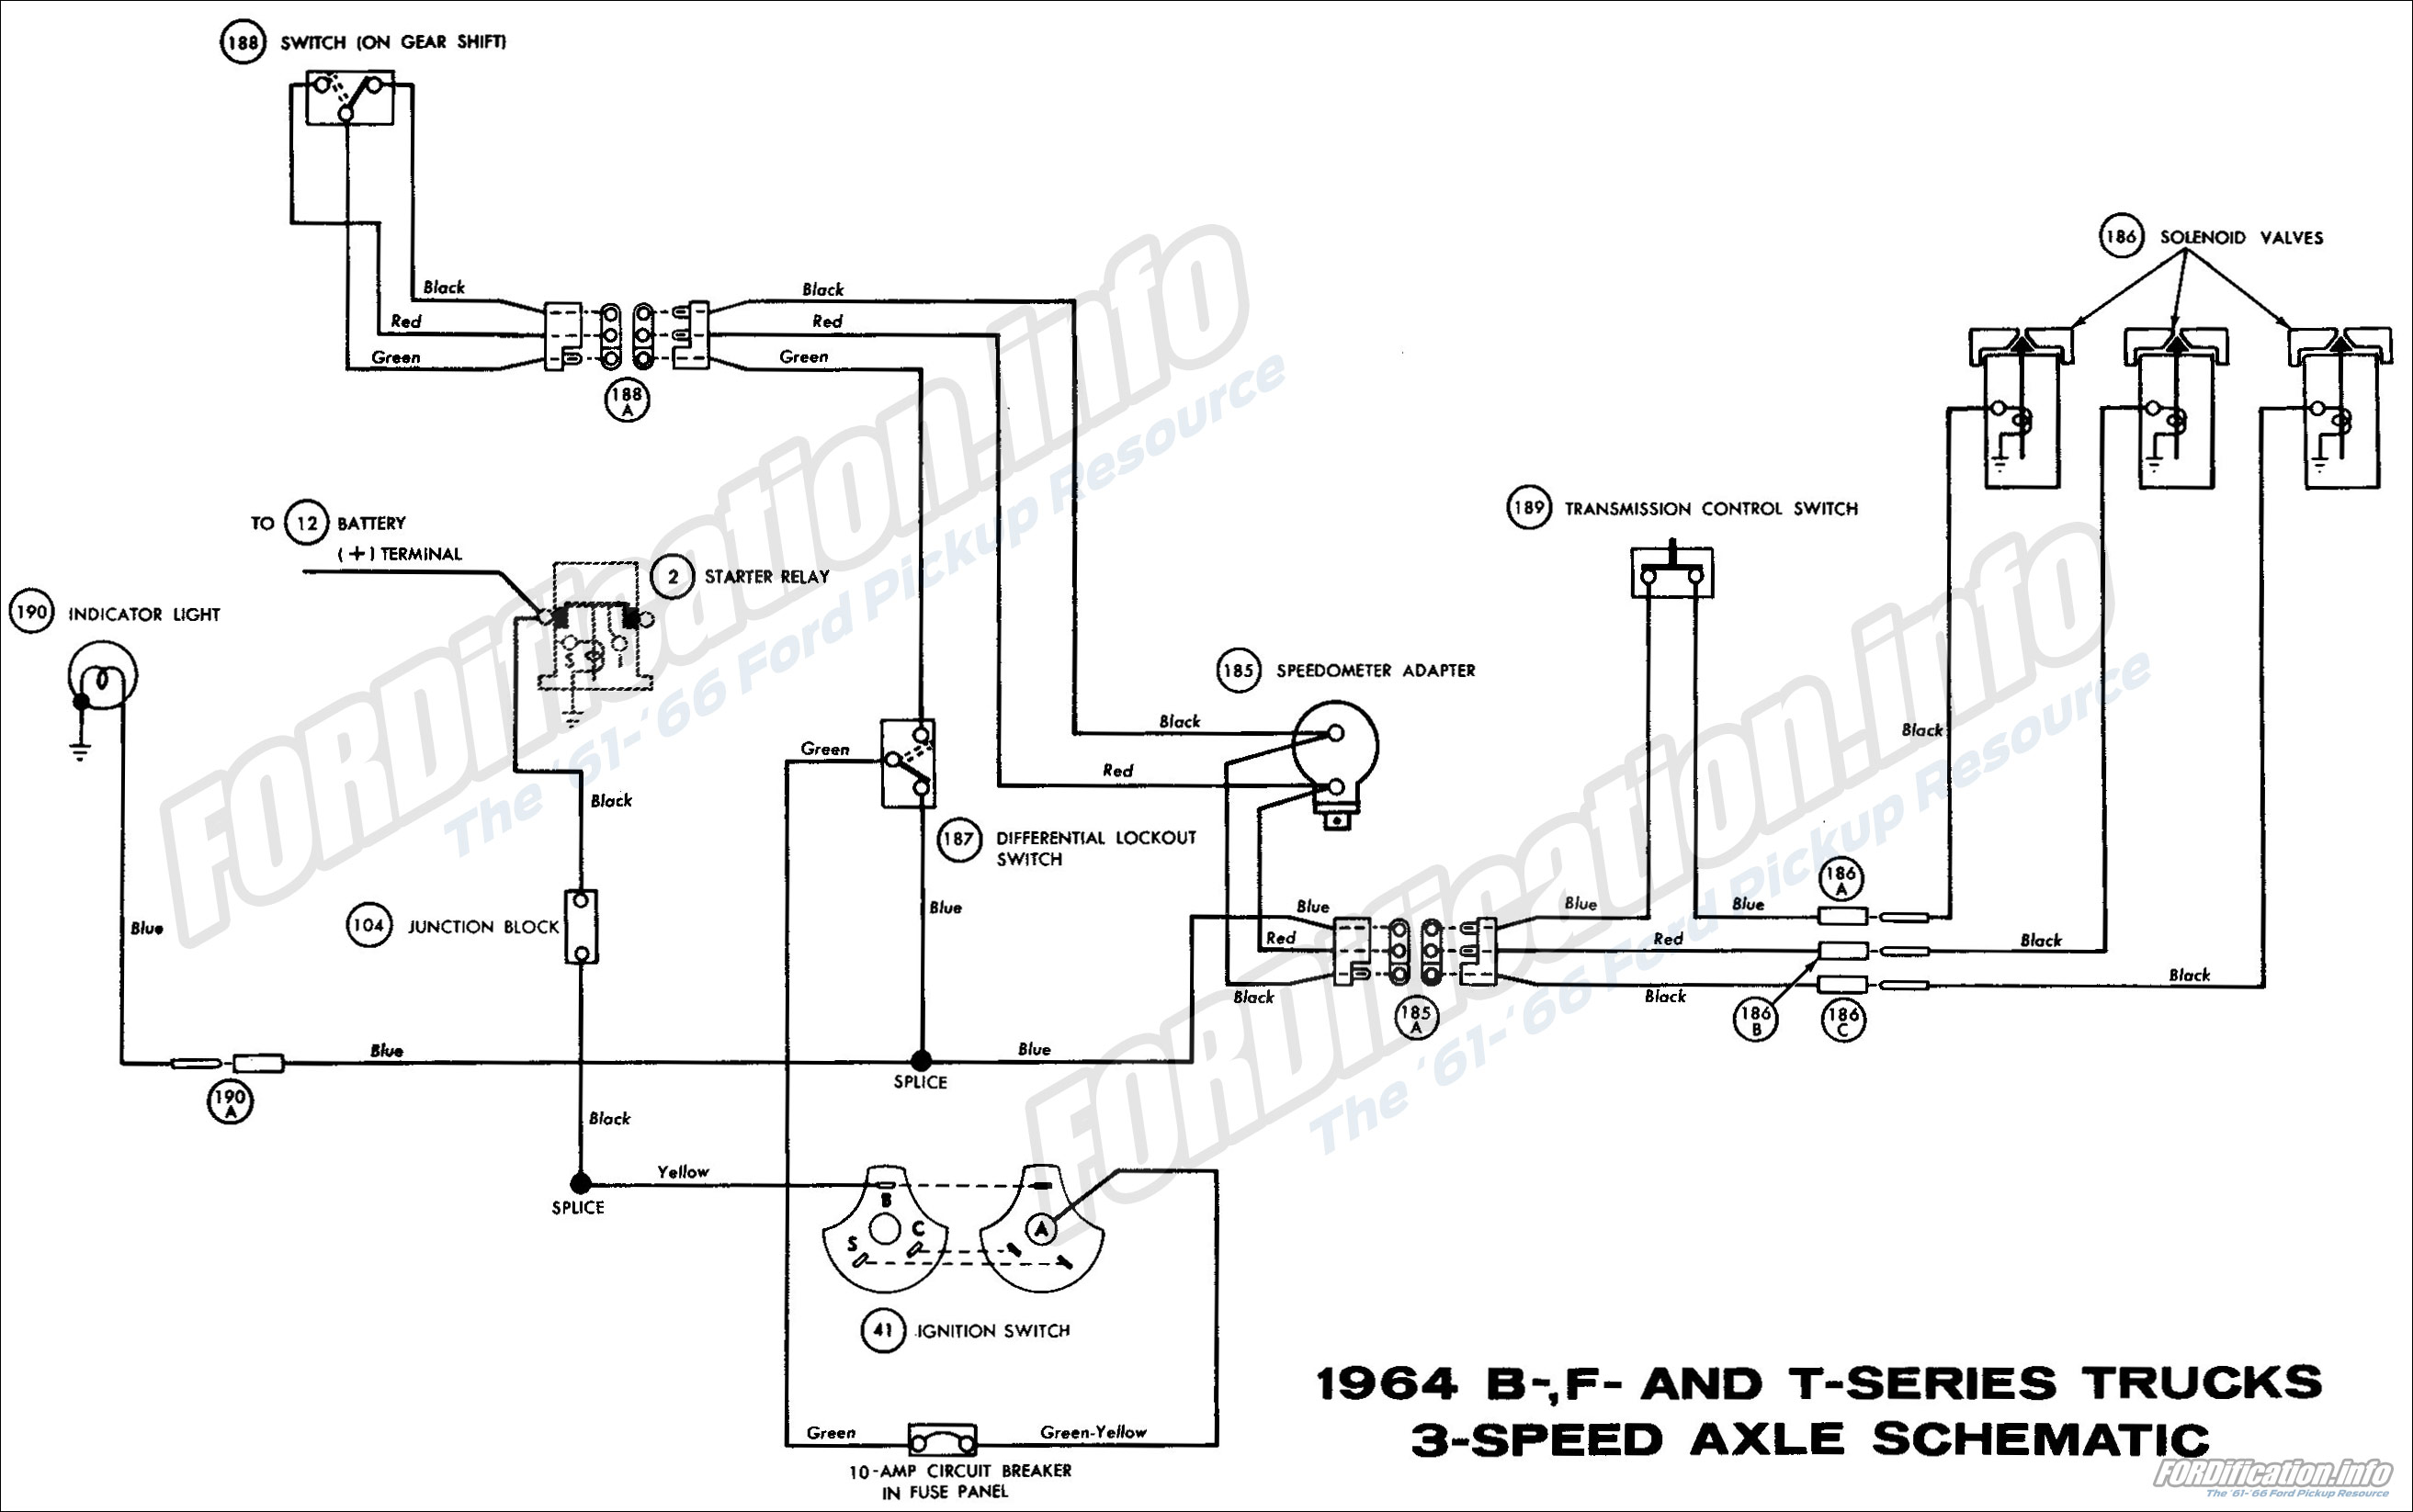 2 Speed Motor Wiring Diagram For Ford F750 - Electrical Drawing ...